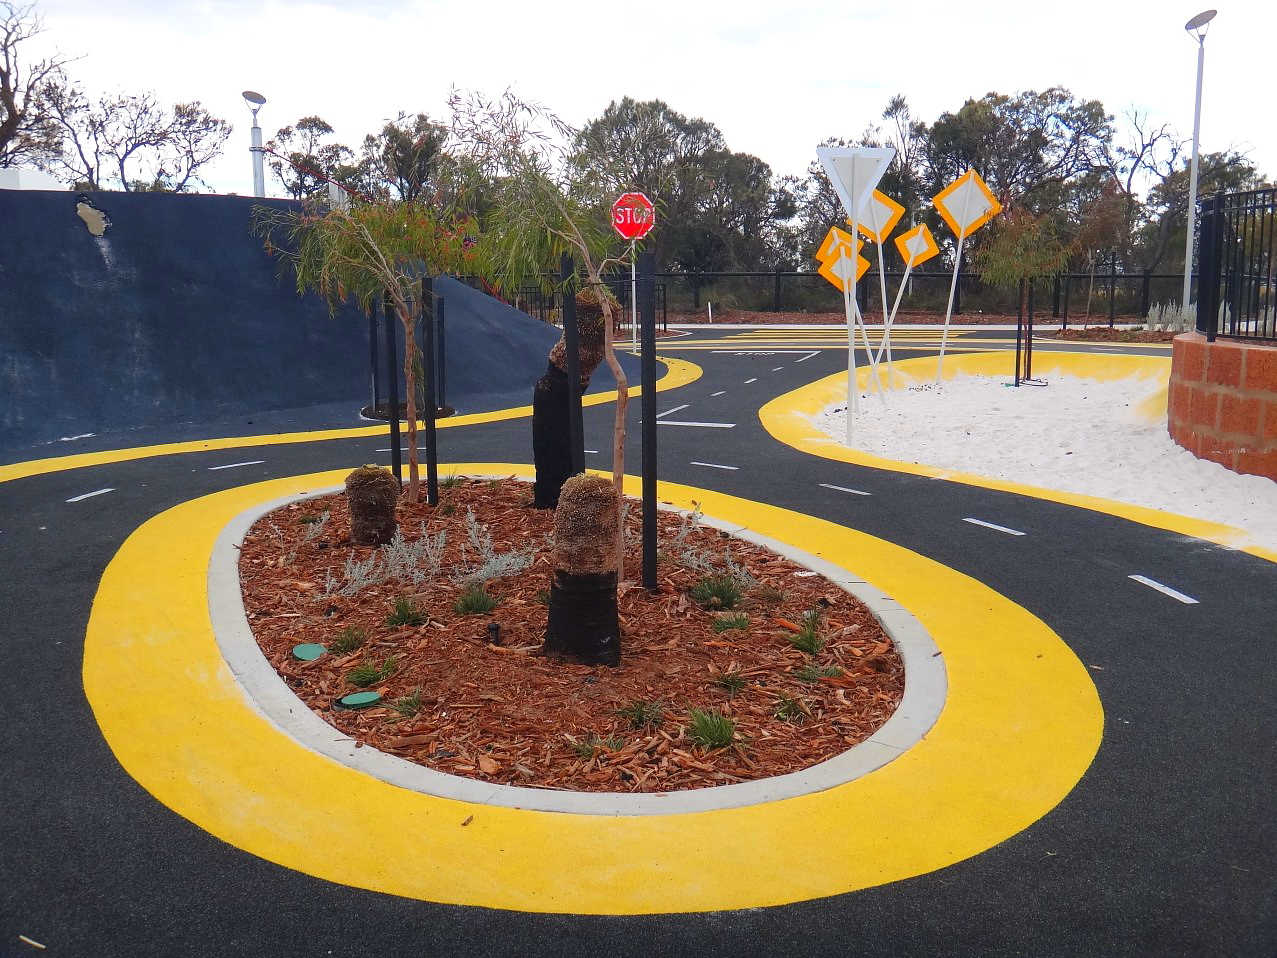 playground road for kids cars - HD1277×958